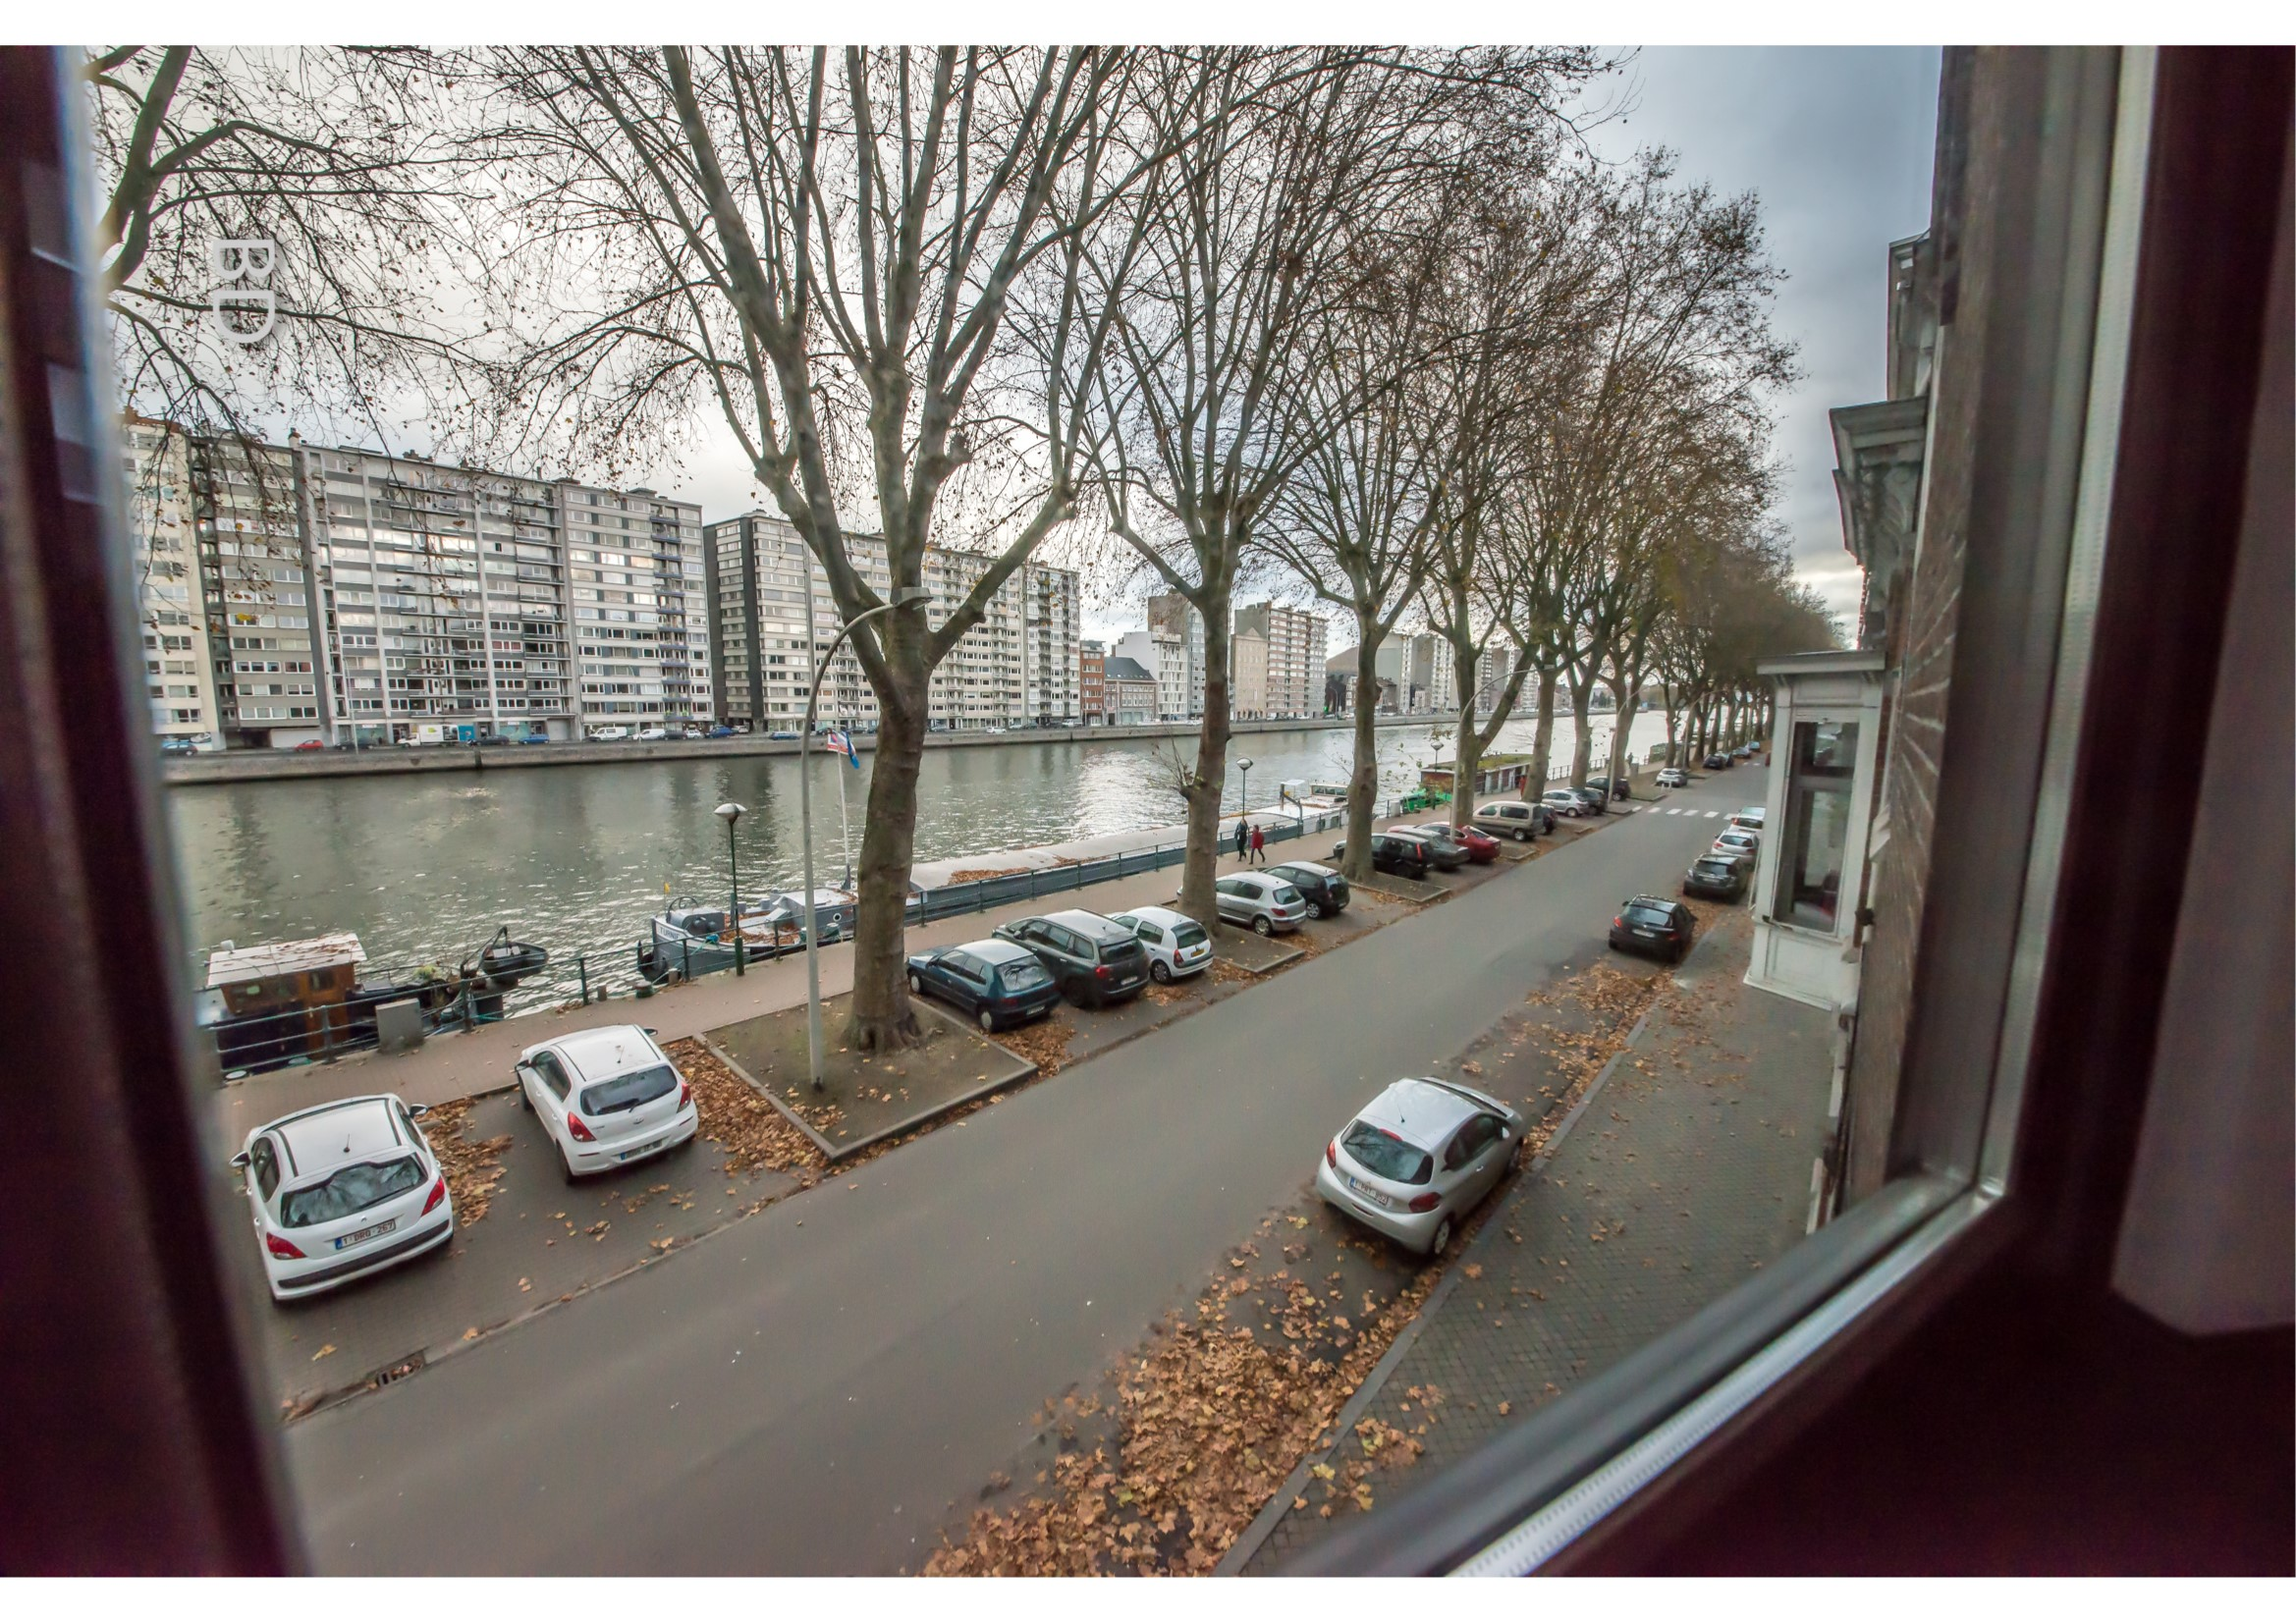 Appartement 2 chambres louer 4020 li ge immo particulier for A louer immobilier